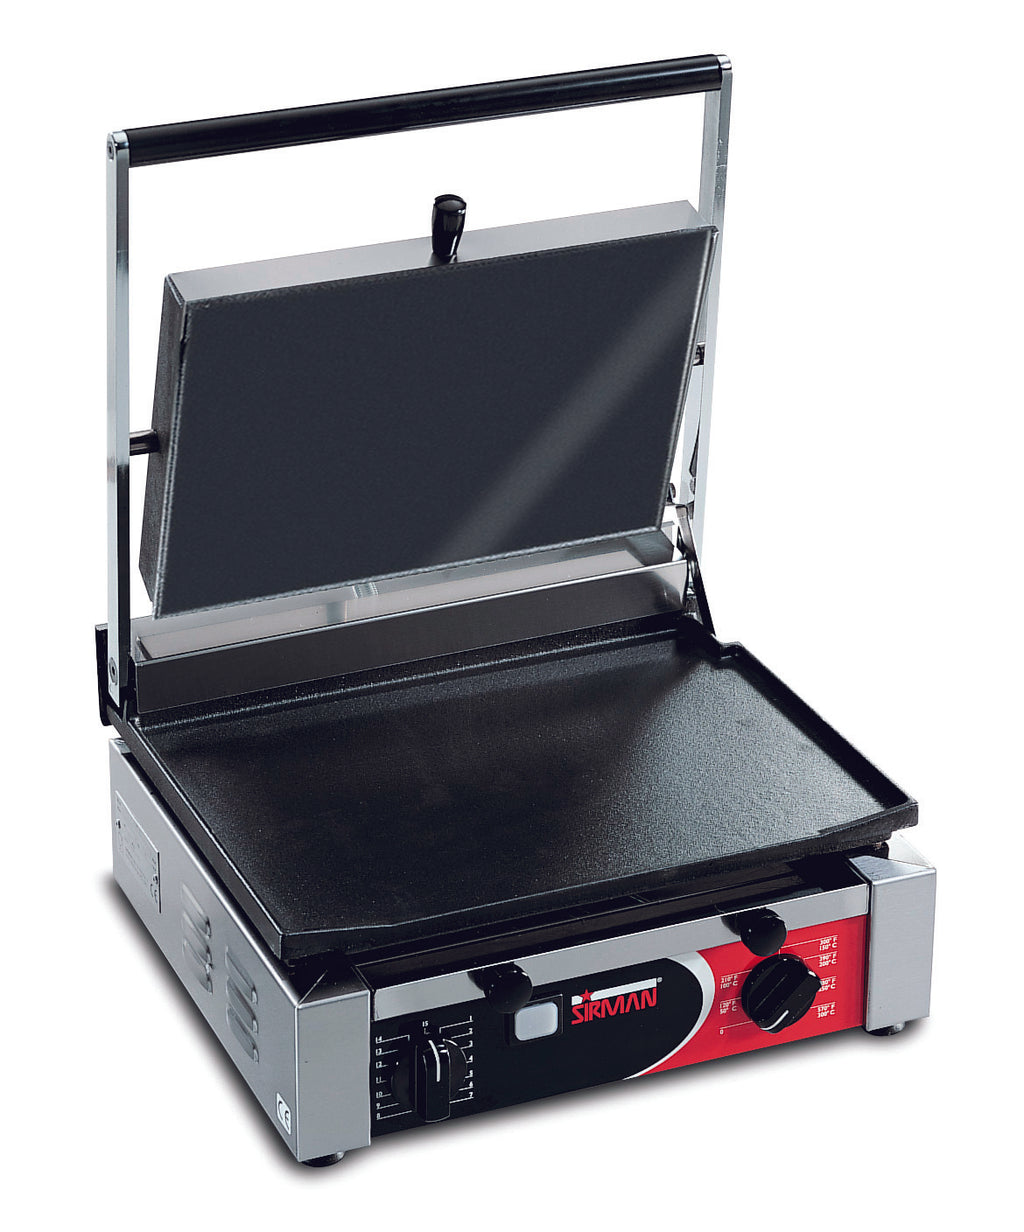 Sirman - Large Single Contact Grill  - Flat,Contact Grill,Sirman